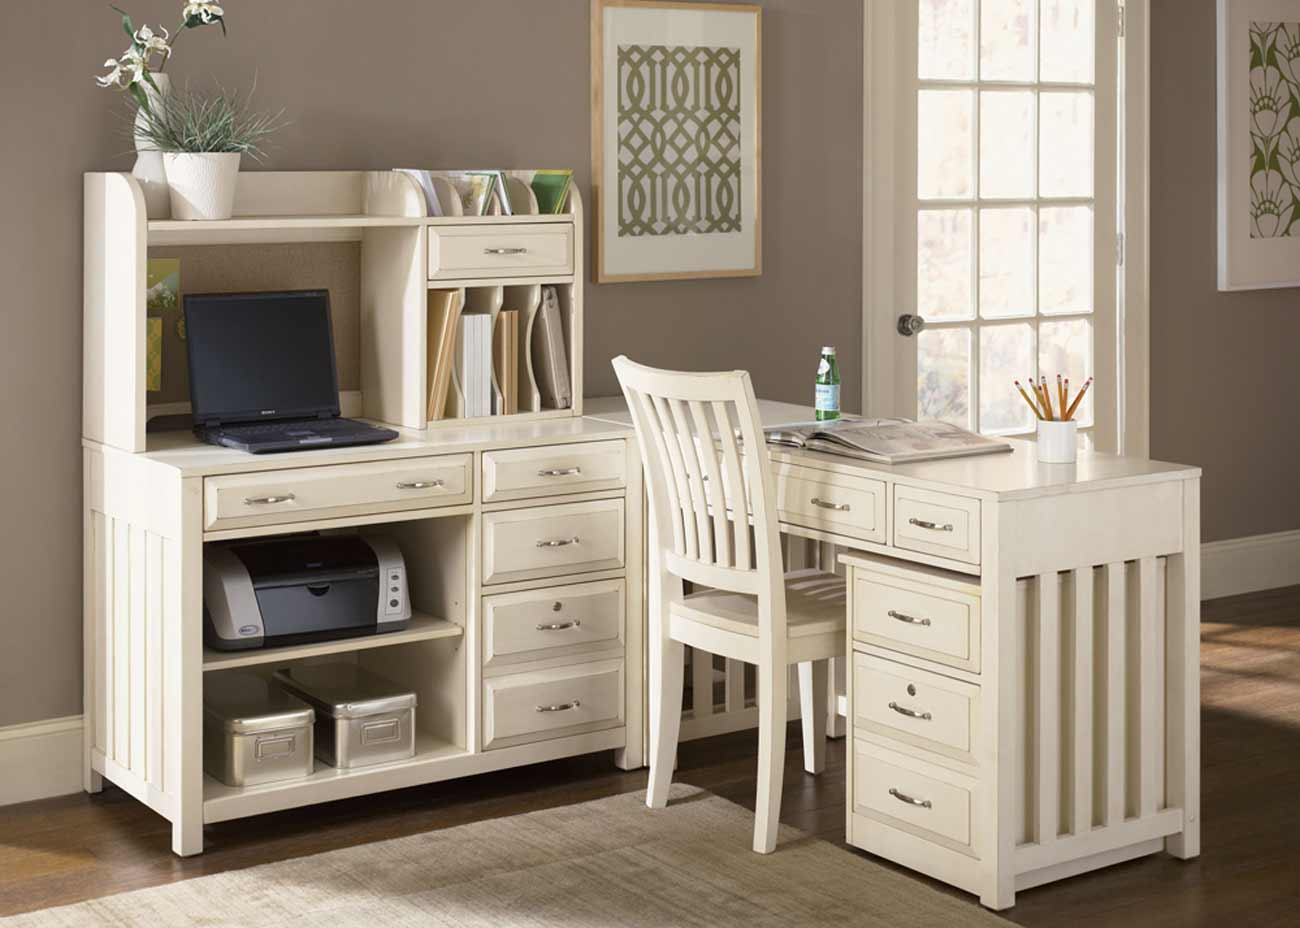 Student Desk with Hutch White Finish  amazoncom